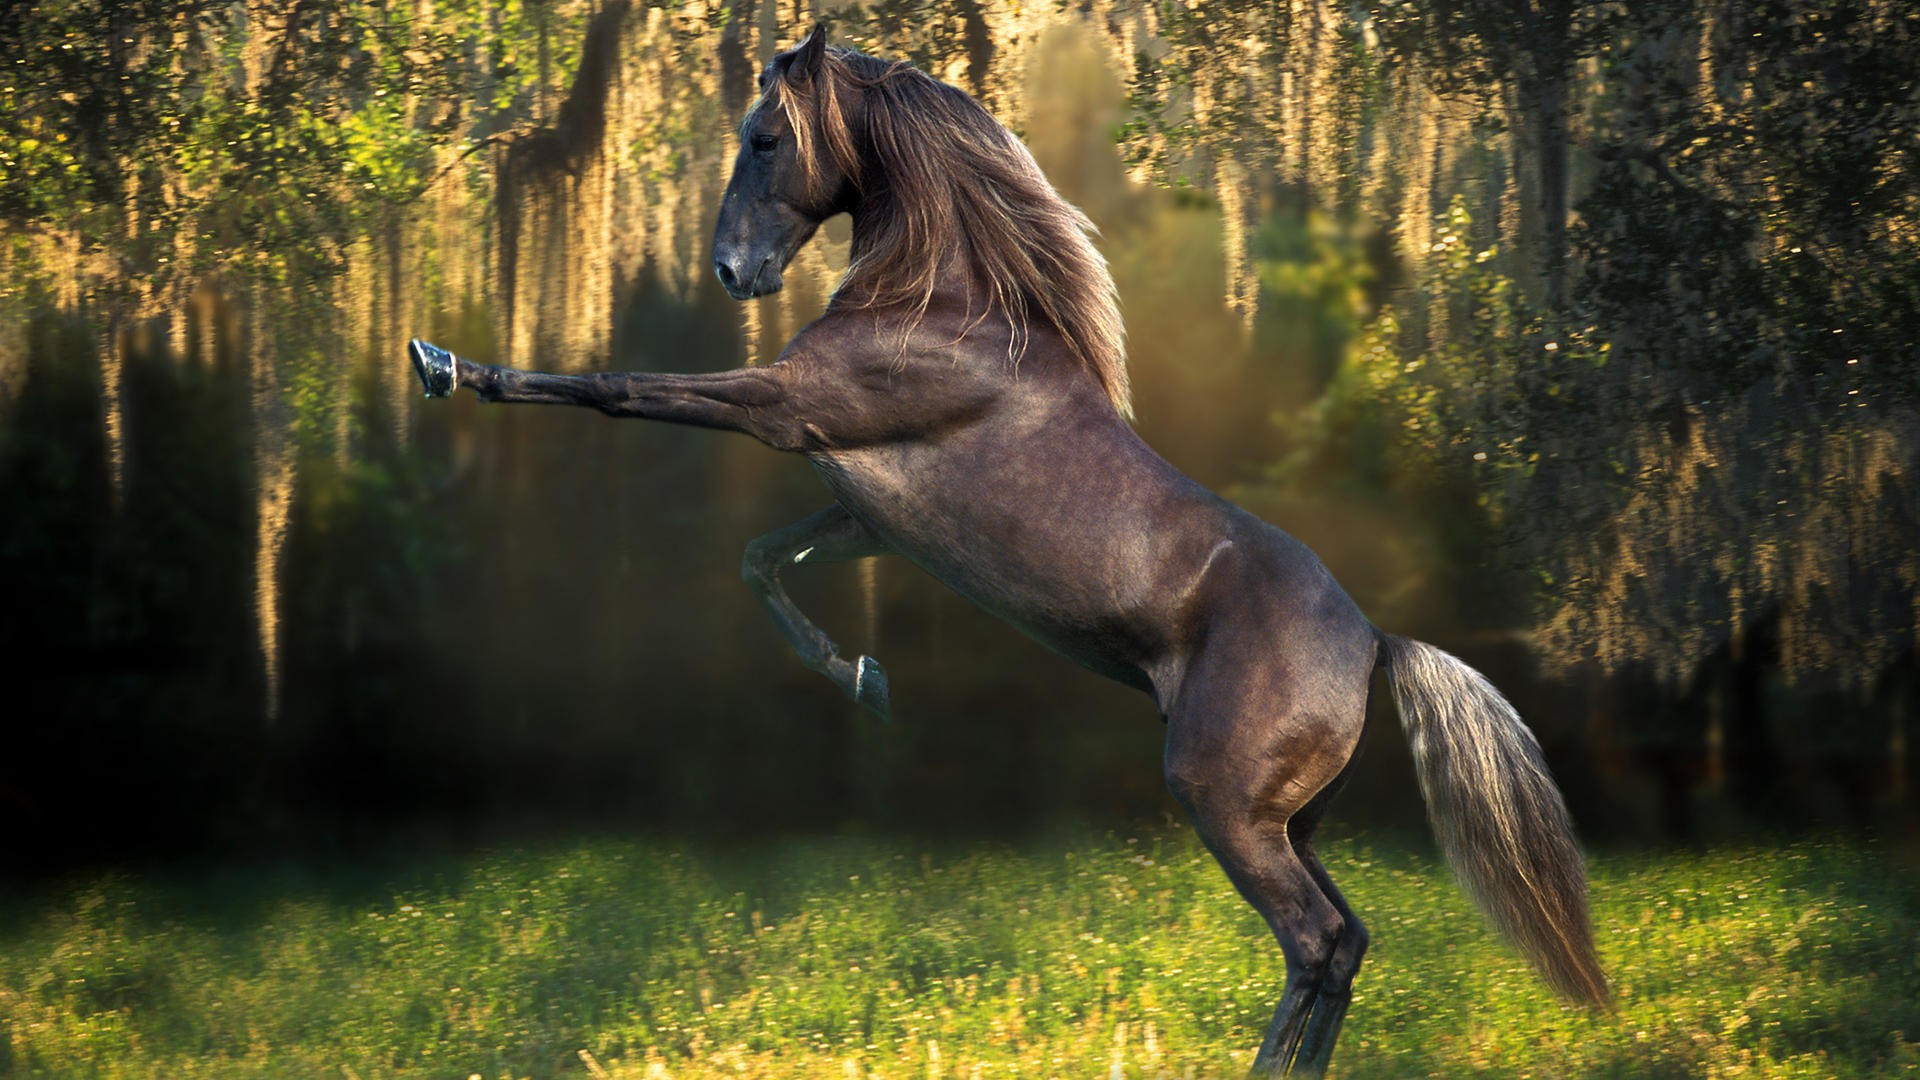 1920x1080 horse desktop wallpaper desktop backgrounds for free hd wallpaper